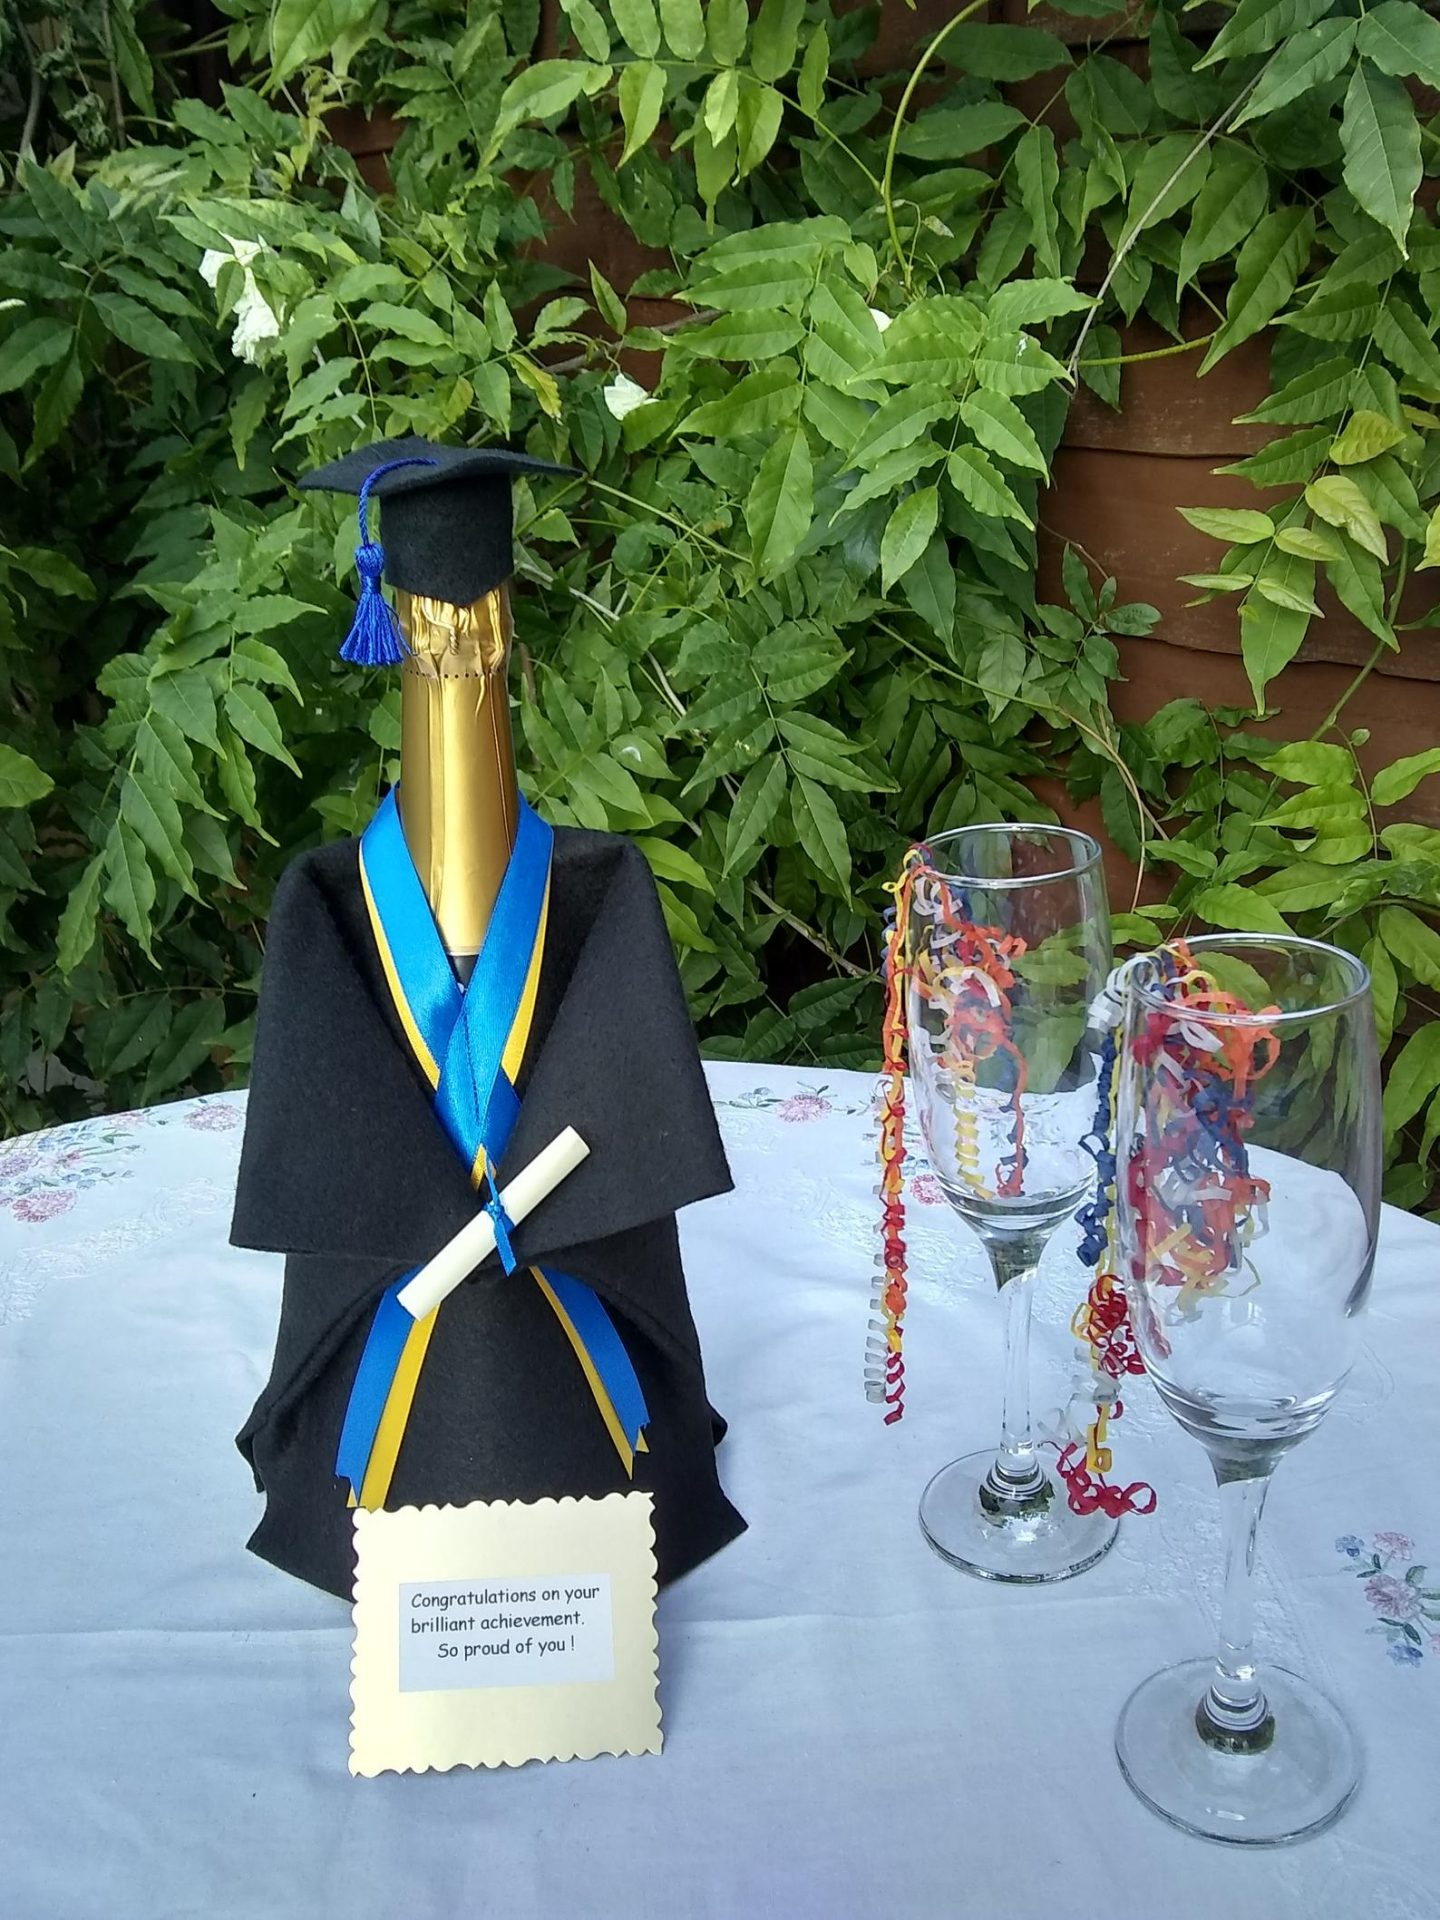 Graduation party decorations with cap and gown